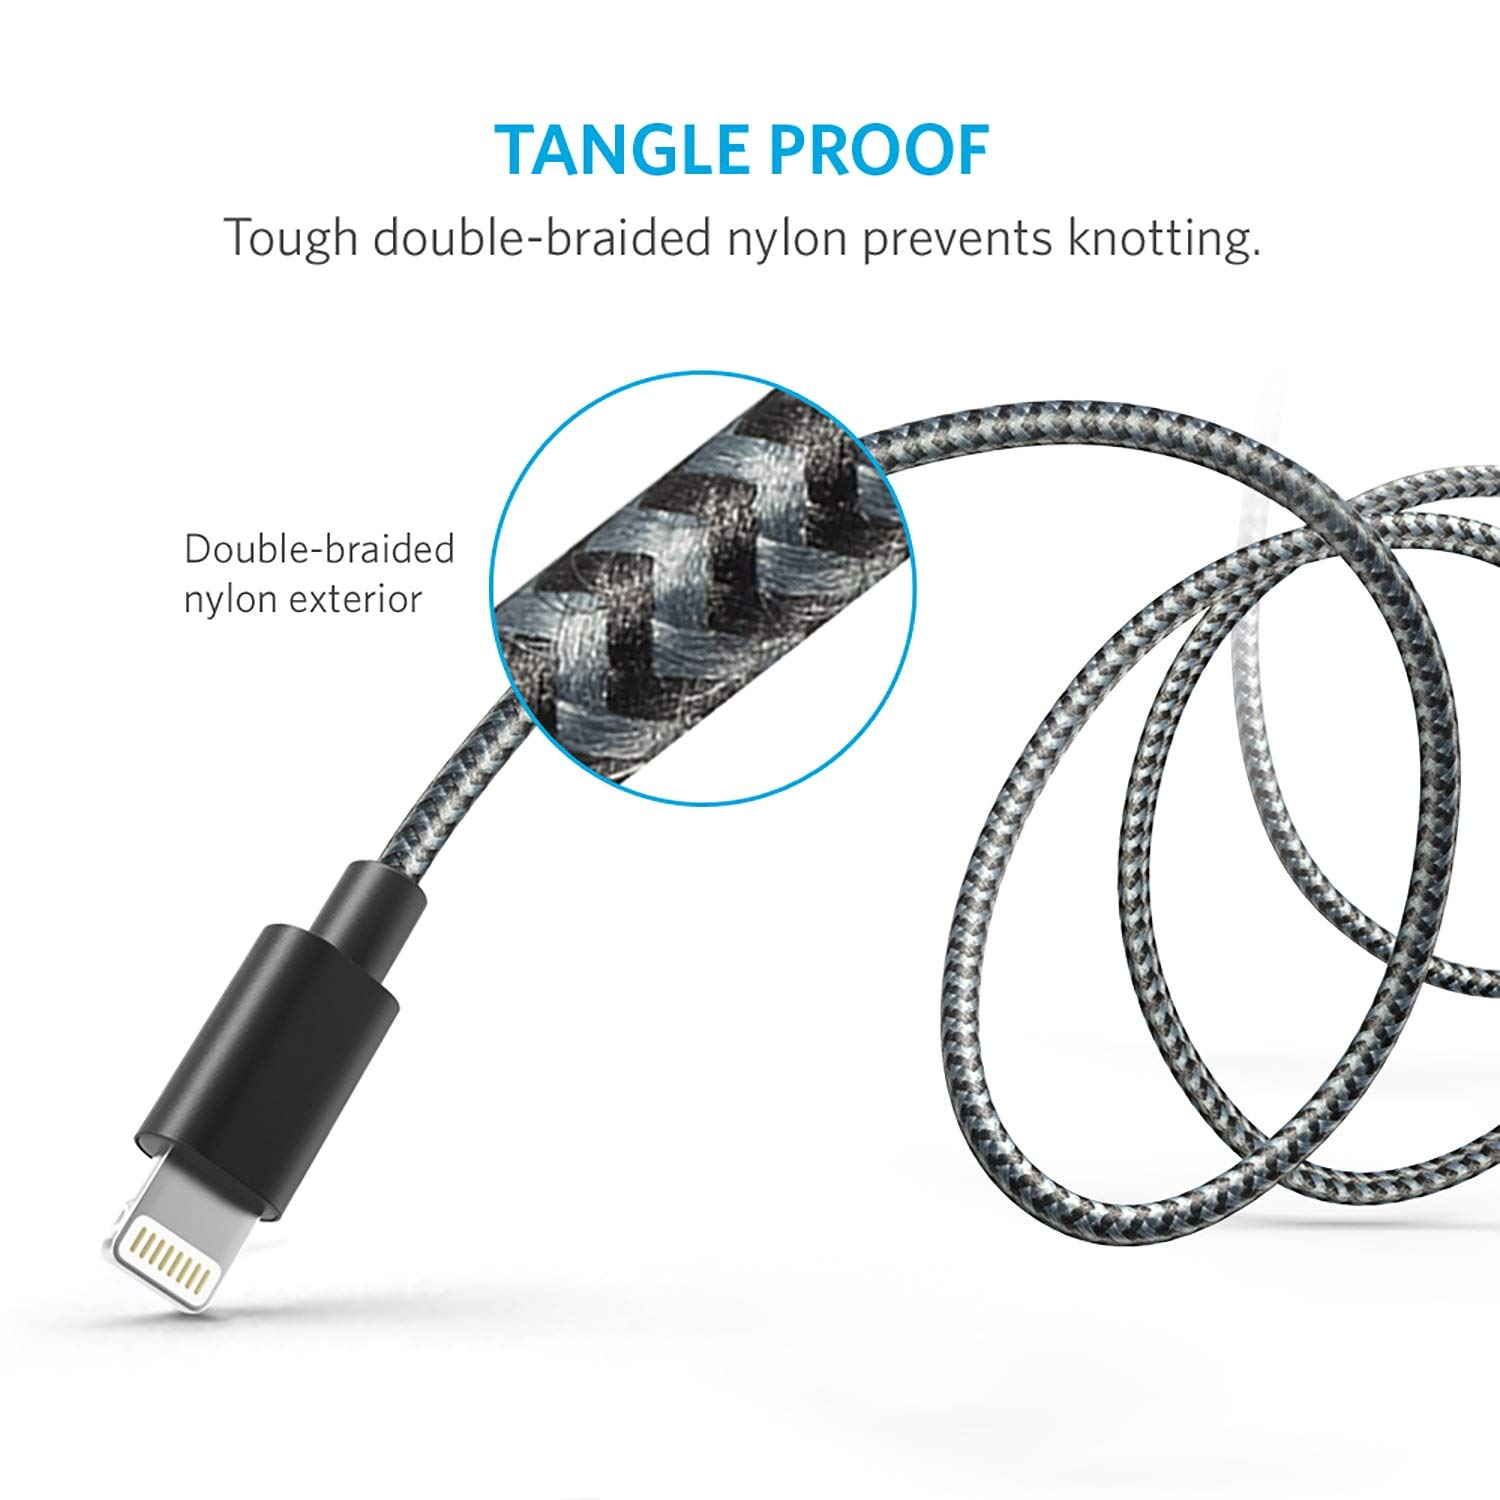 Anker 6ft Nylon Braided Usb Cable With Lightning Wiring Diagram5pin Micro Cableled Product On Connector Apple Mfi Certified For Iphone 6s Plus 6 Ipad Pro Air 2 And More Space